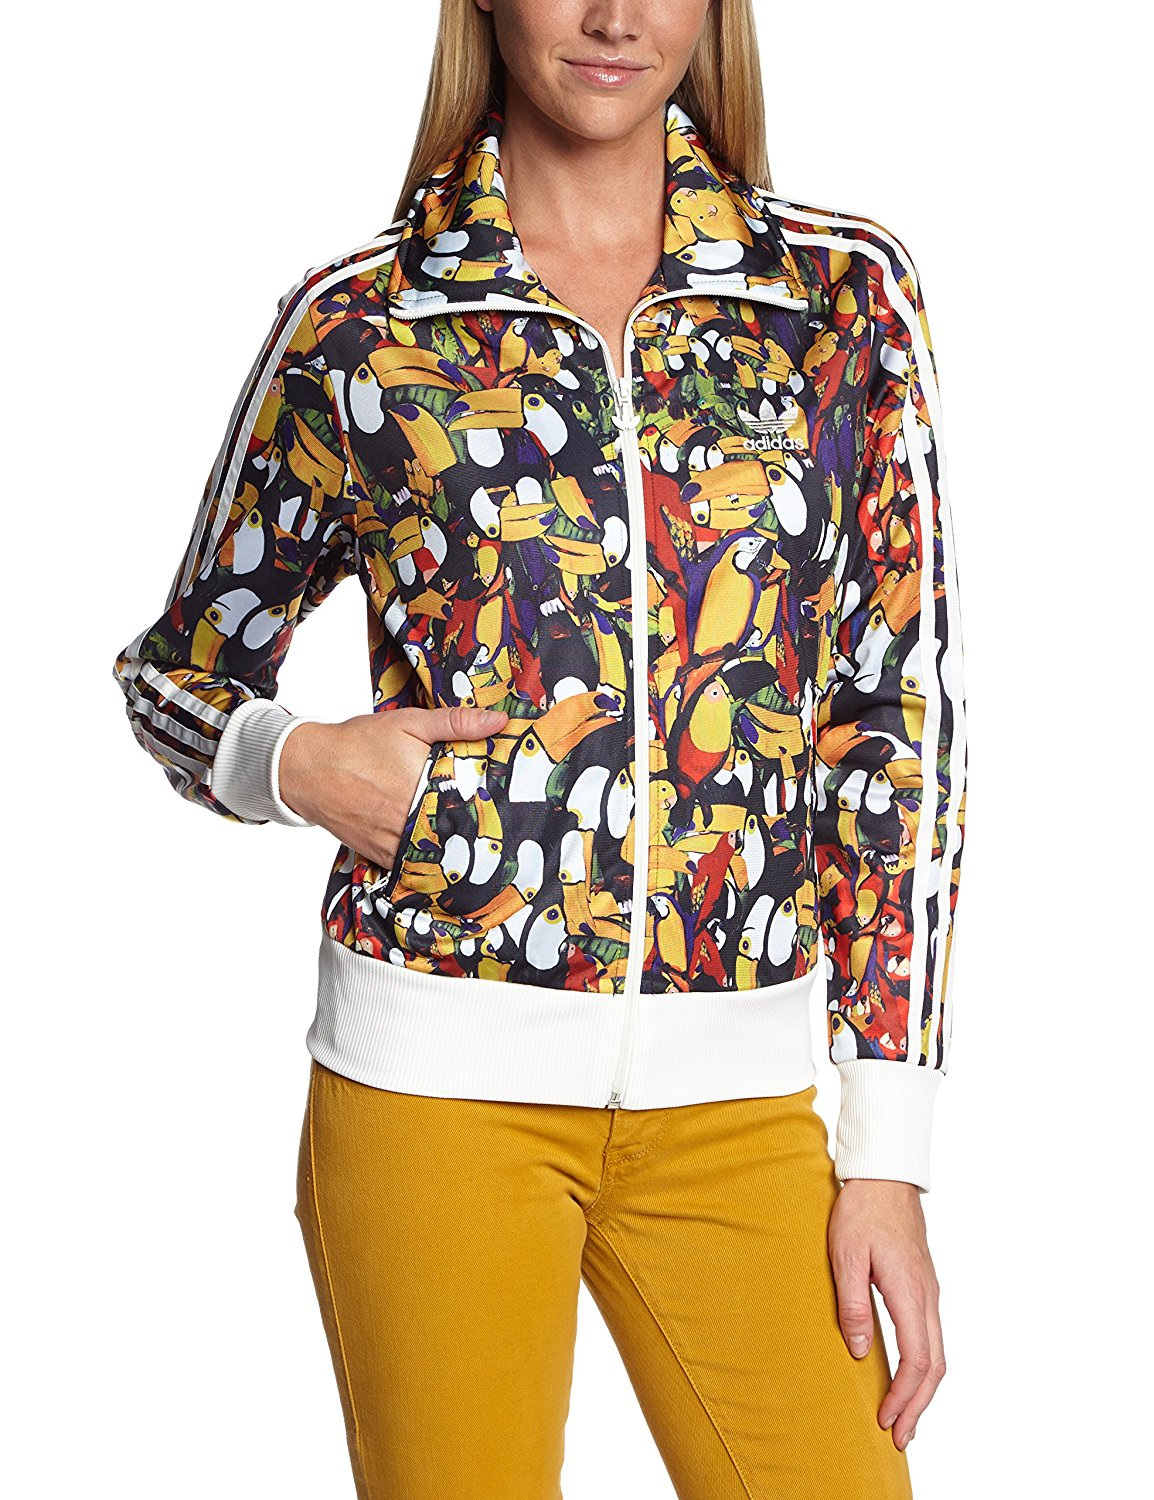 Adidas Originals Womens Damen Trainings Jacket Firebird Felpa Tucanario F78104 Jacket